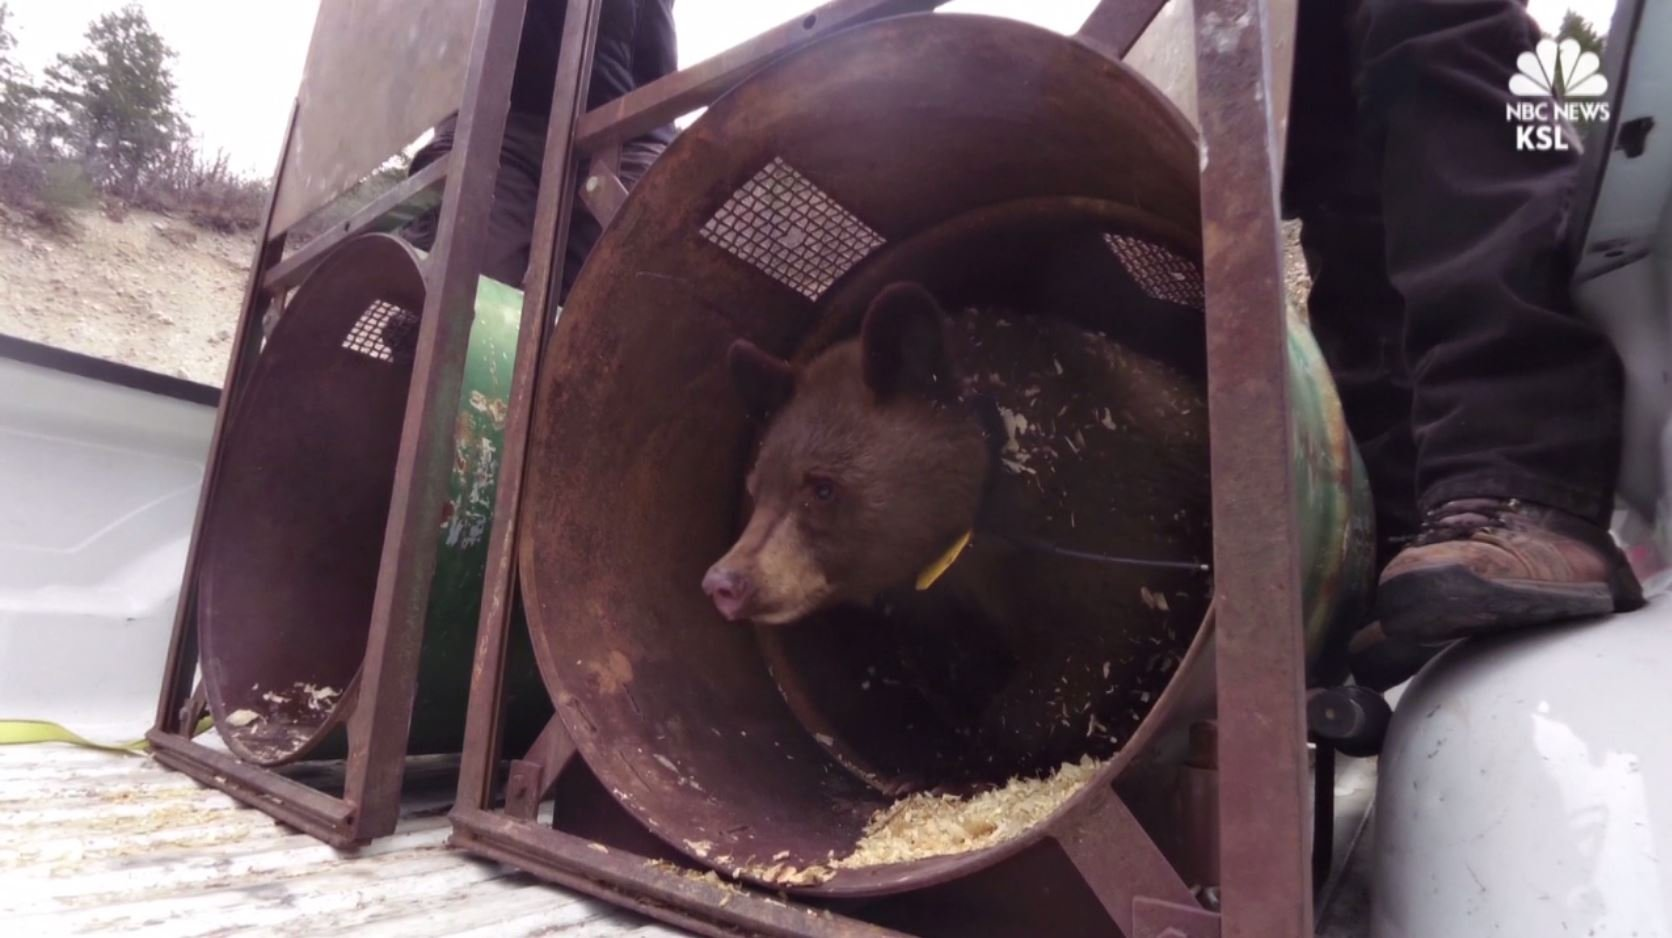 Wildlife officers released a bear into the Utah wilderness